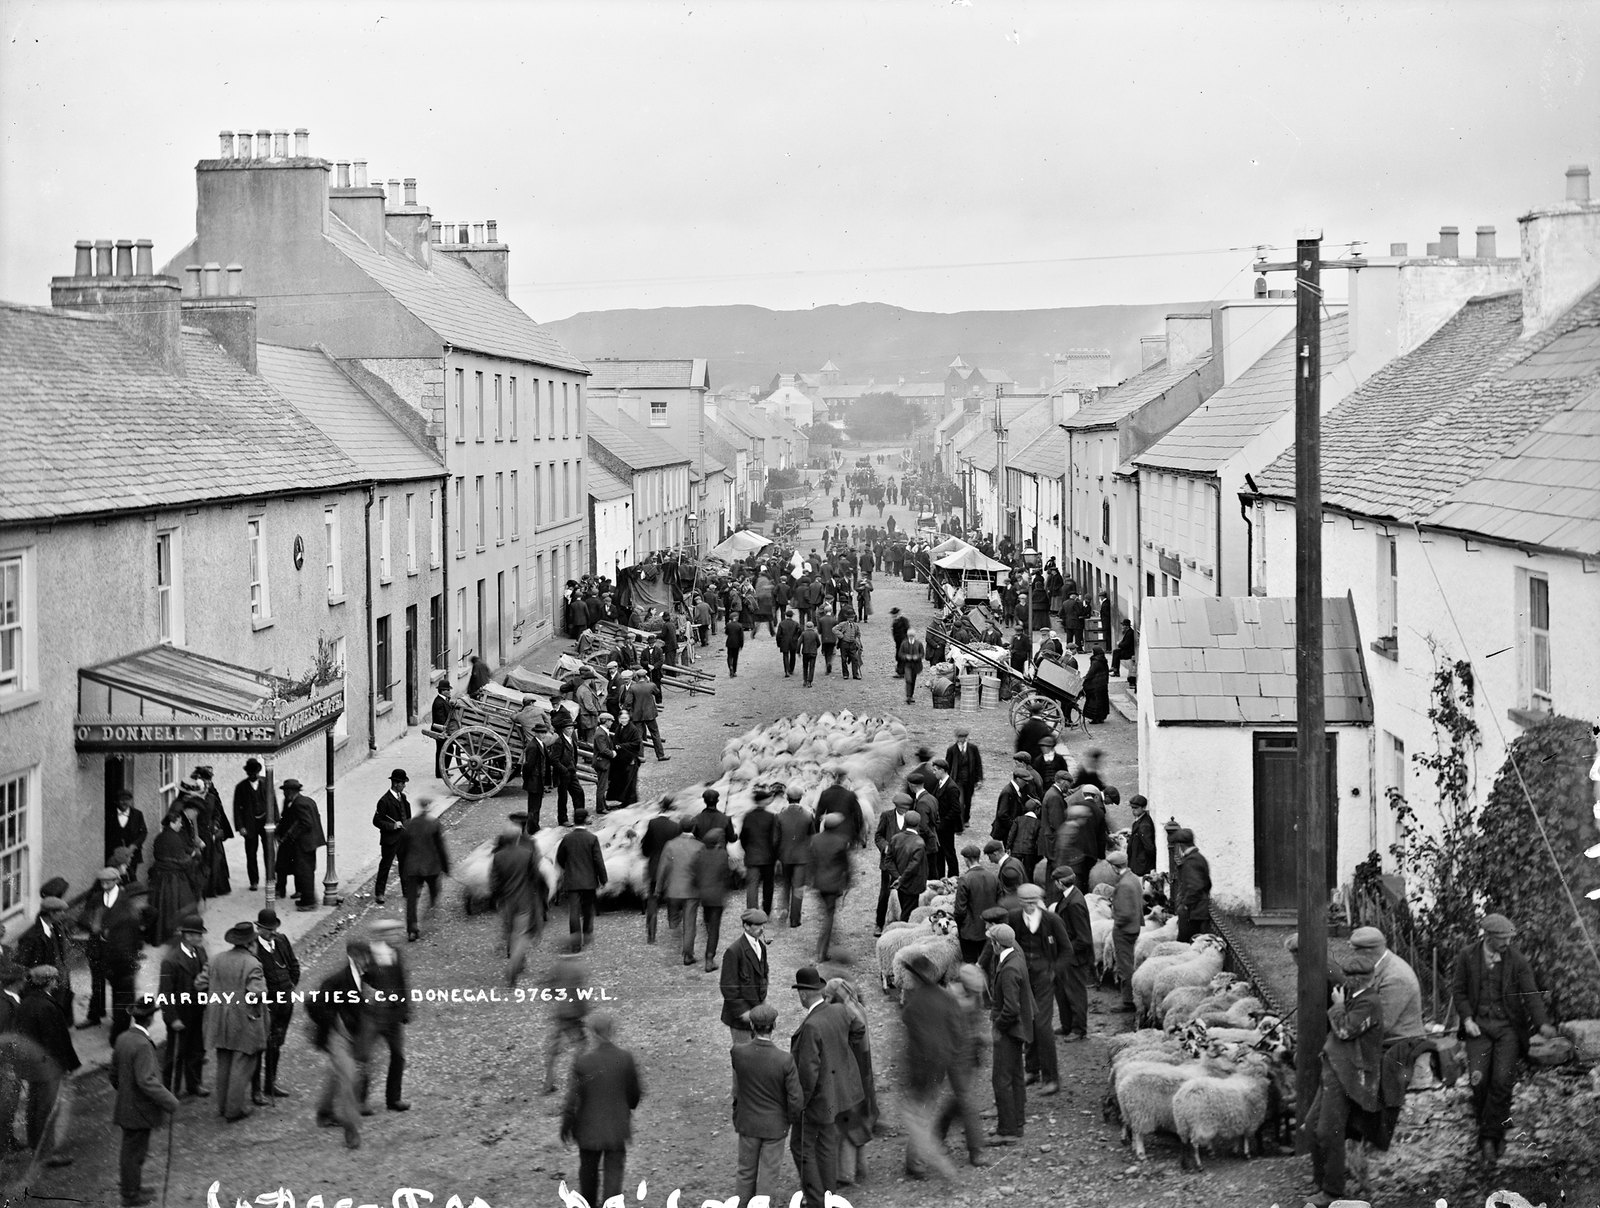 Fair Day, Glenties, Co. Donegal | by National Library of Ireland on The Commons